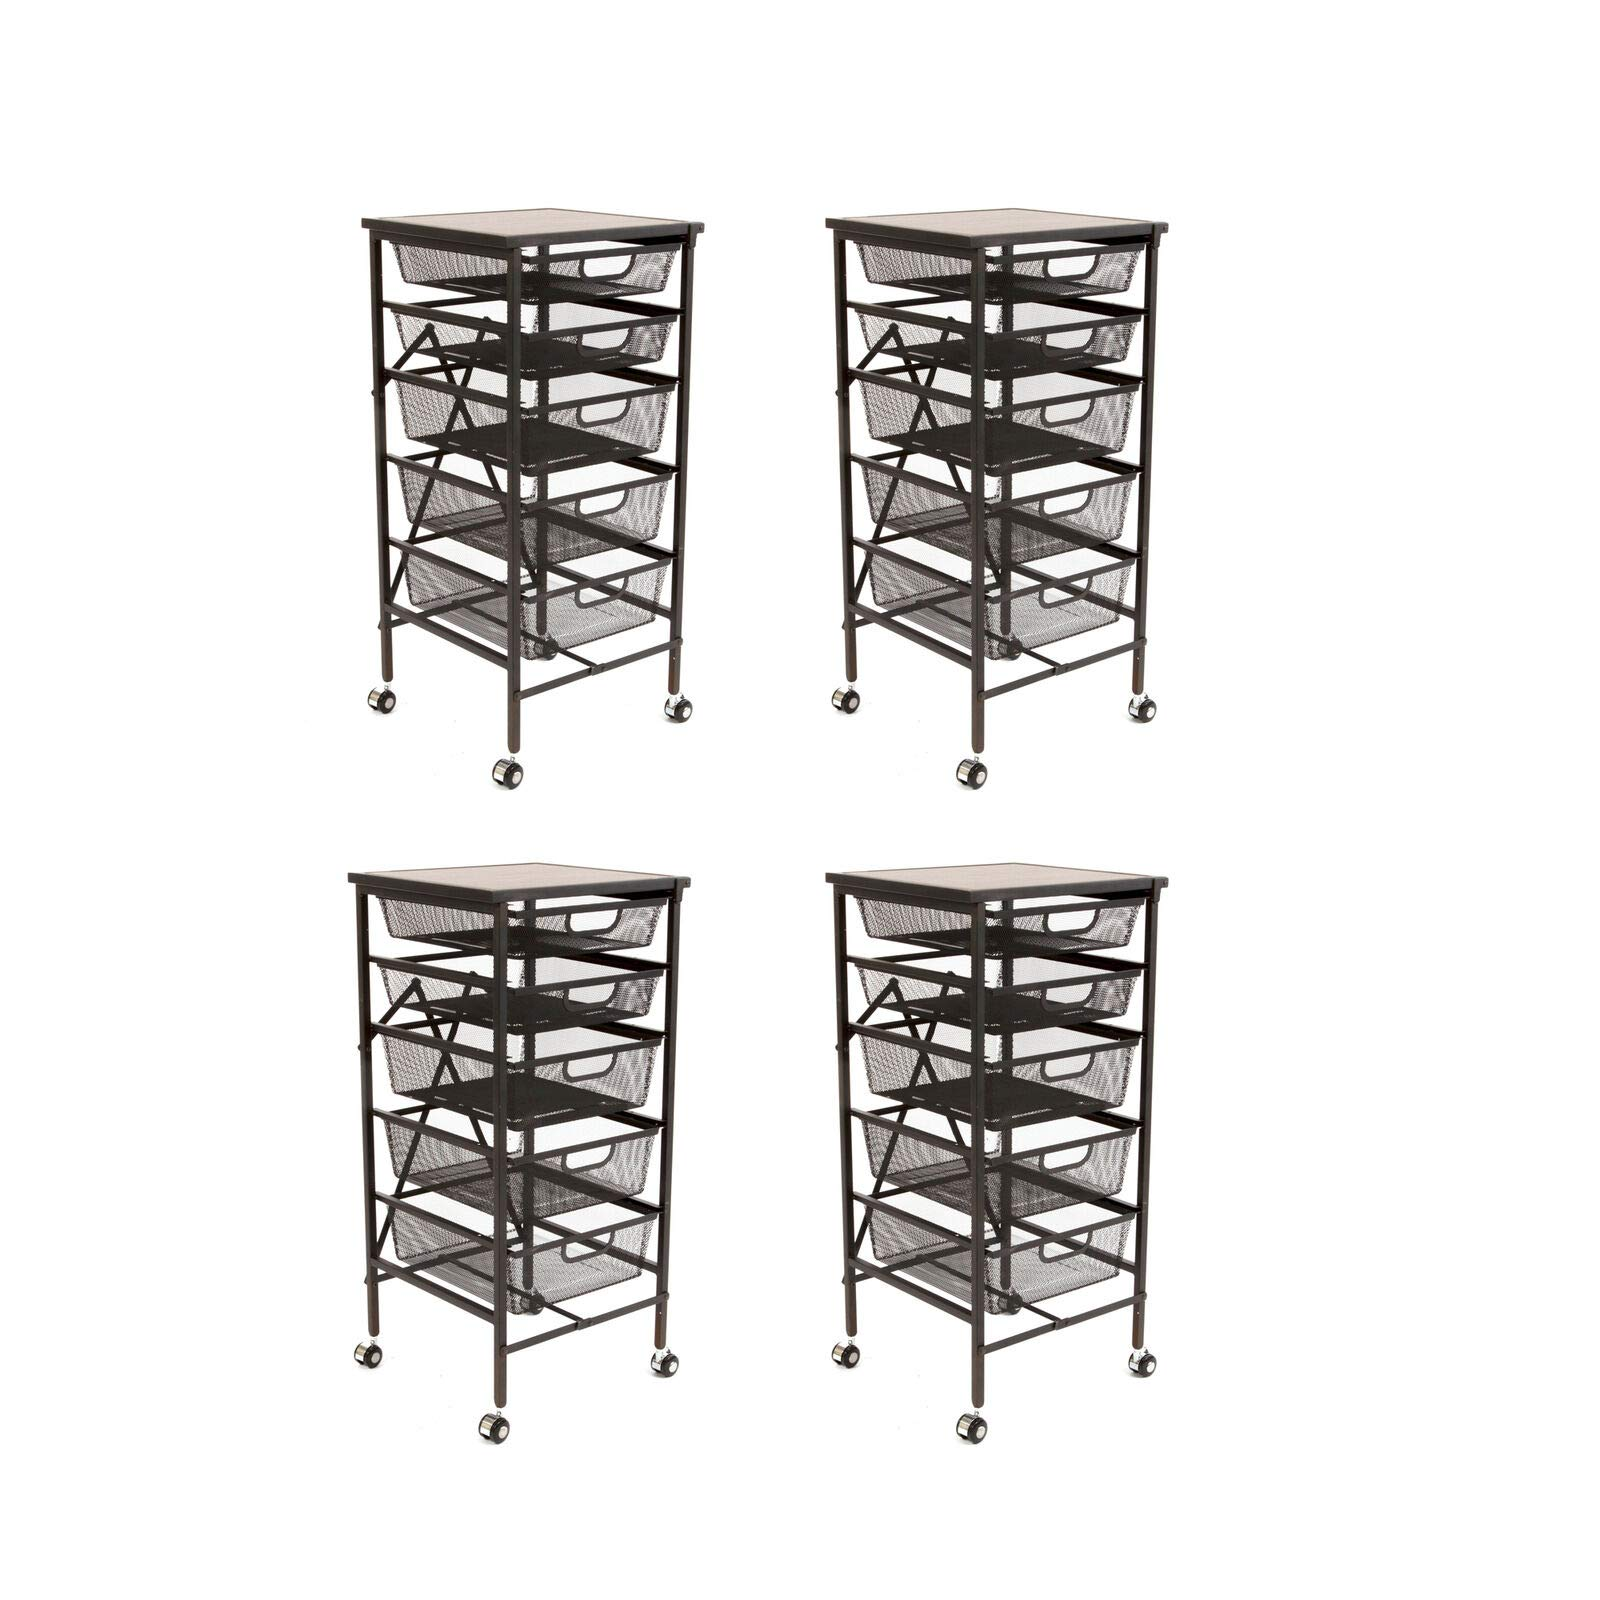 NanaPluz (4 Pack) Black 34'' Rolling Wheeled 5-Tier Steel Foldable Drawer Caddy Cart Storage Rack Cabinet Organizer w/Wooden Top with Ebook